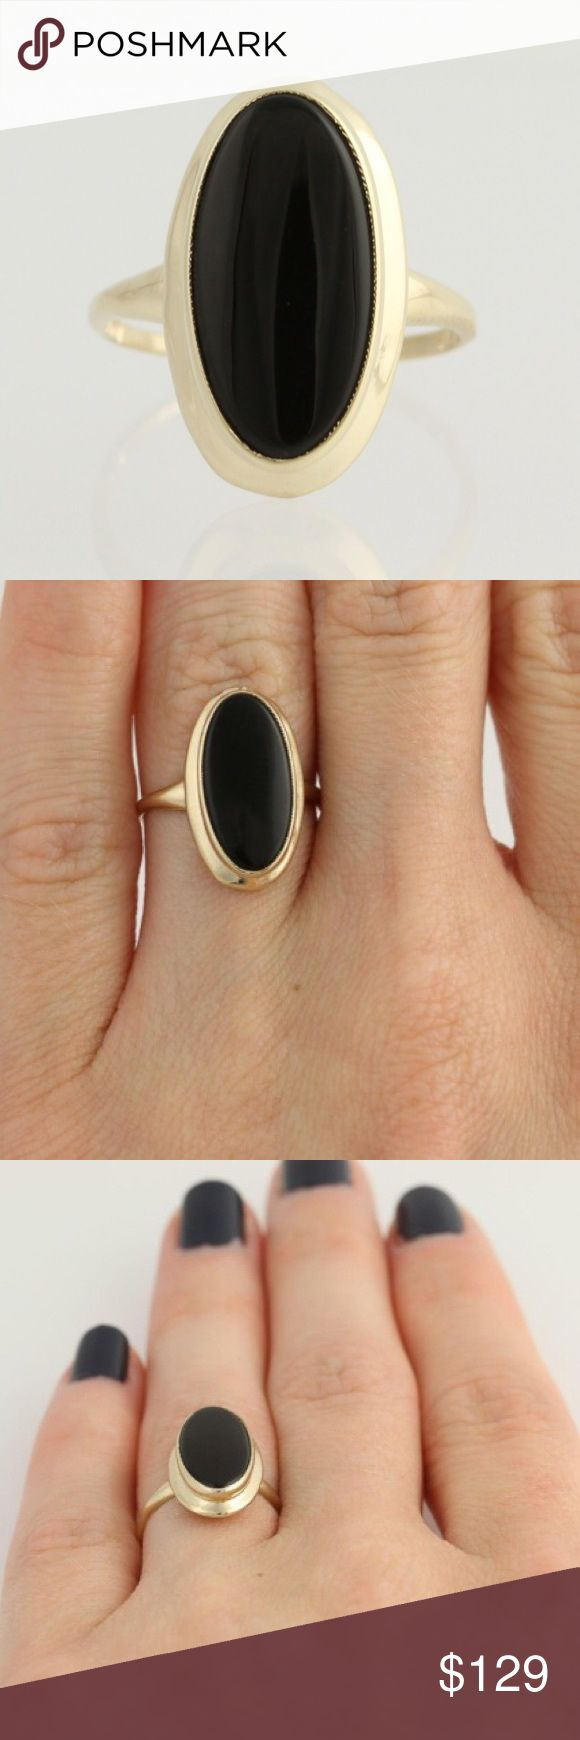 Onyx 10K Gold Ring Vintage onyx cabochon ring set in 10 karat yellow gold. It is marked 10K. Size 4.5. Jewelry Rings